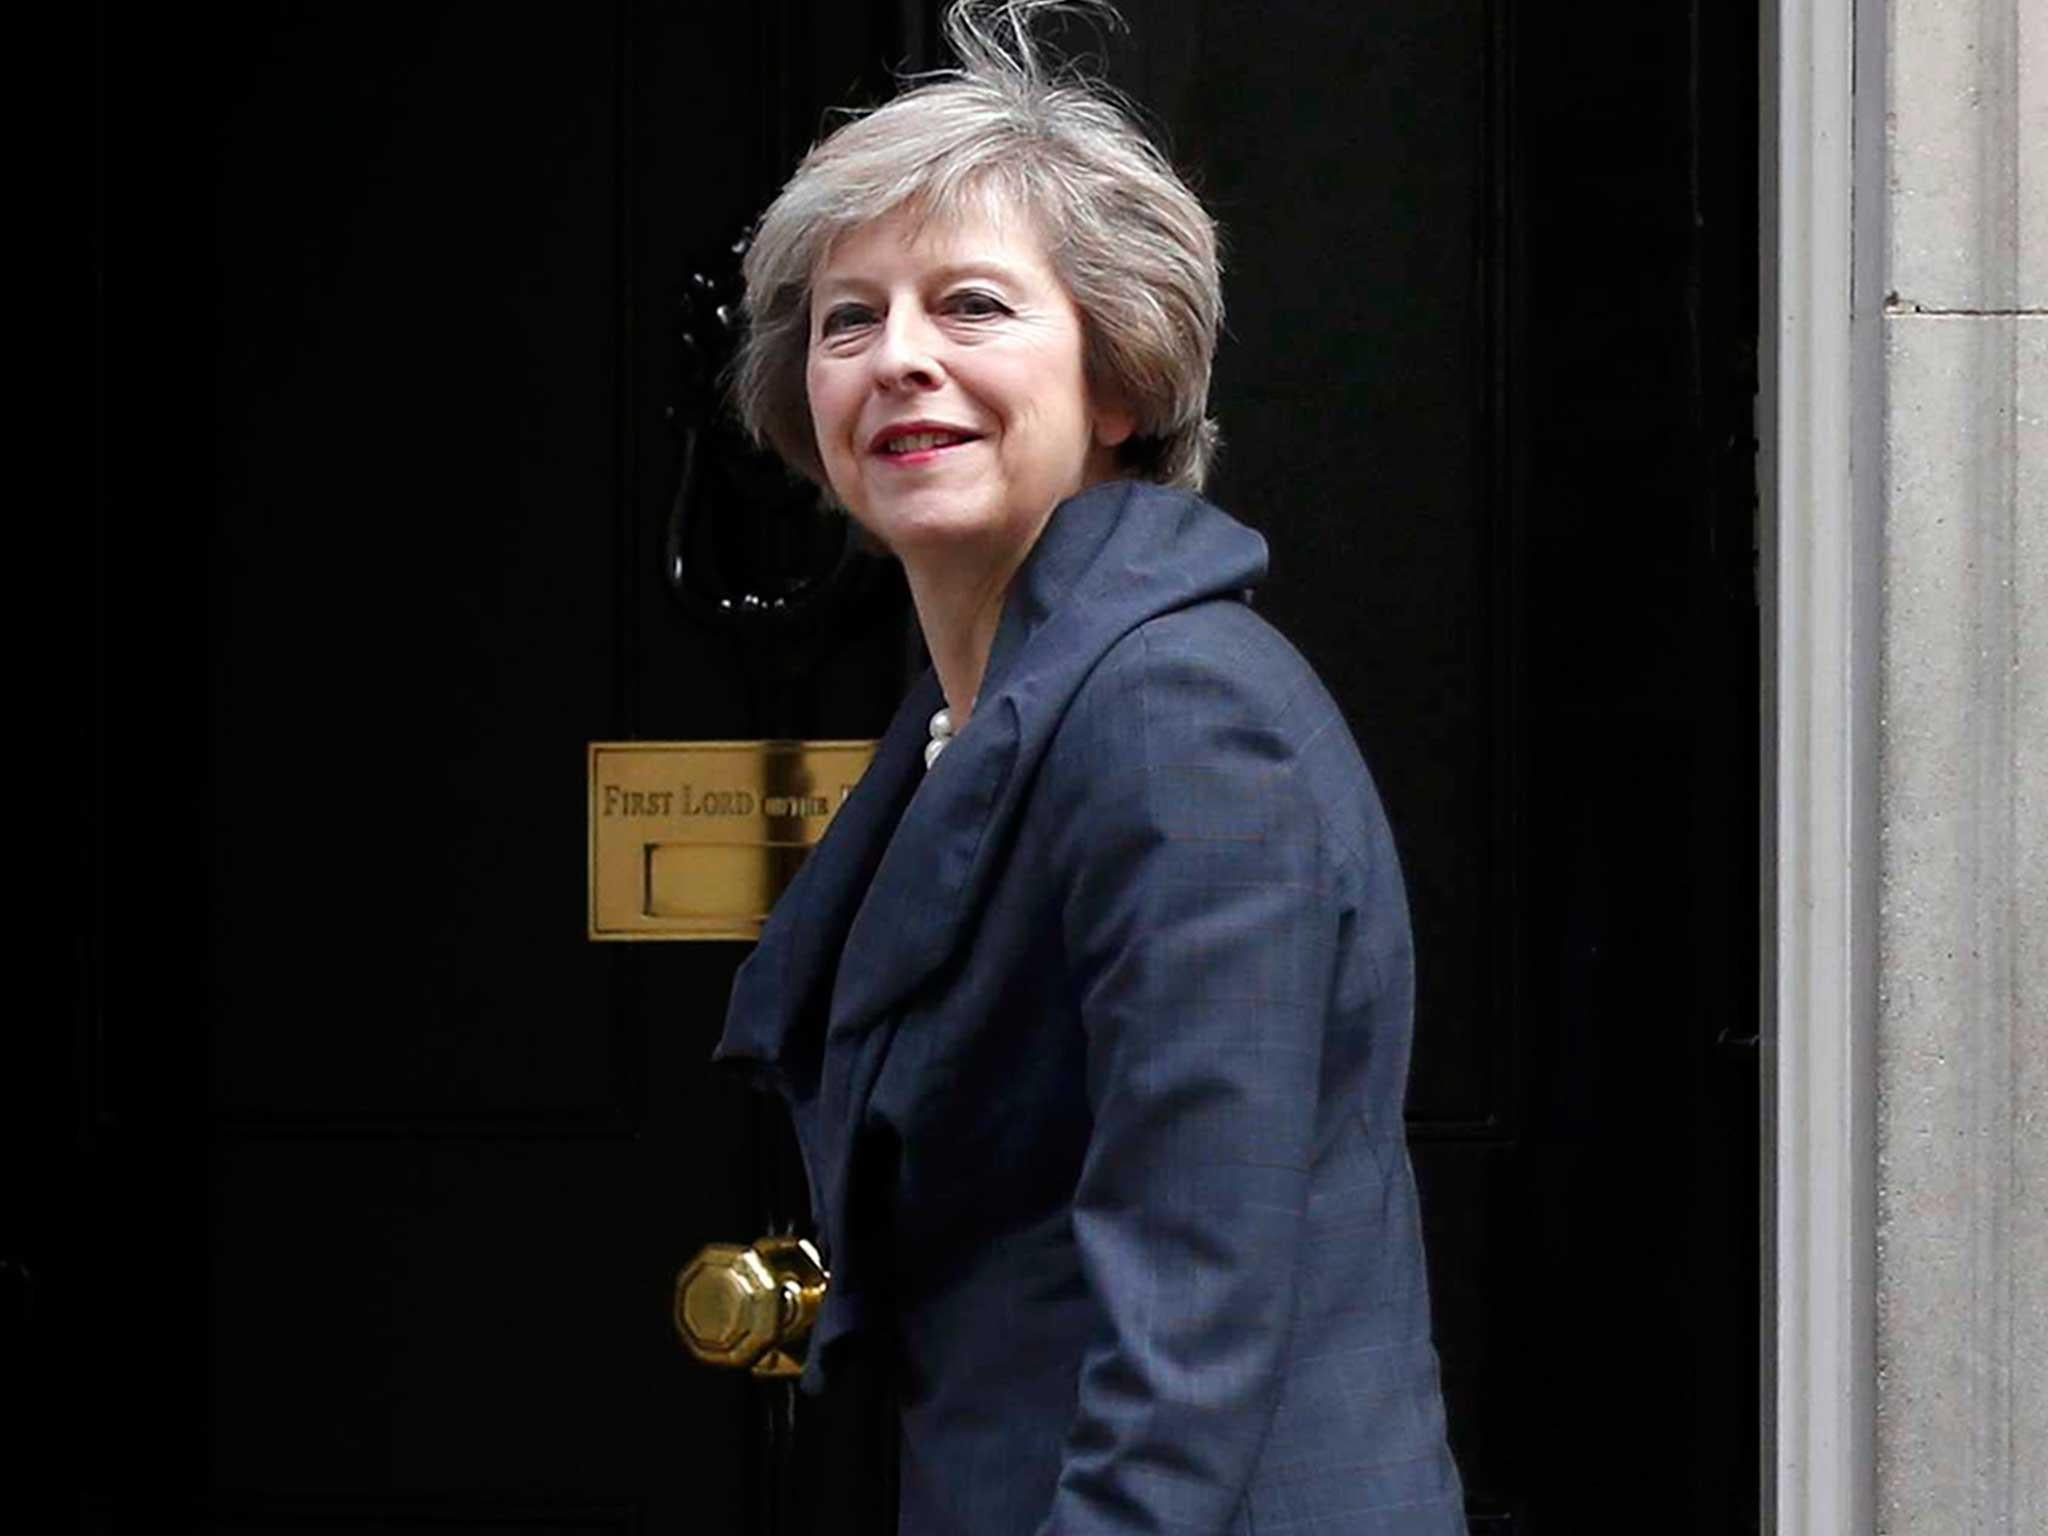 As a British Muslim, I'm terrified that Theresa May - winner of 2015's Islamophobe of the Year - is my new Prime Minister